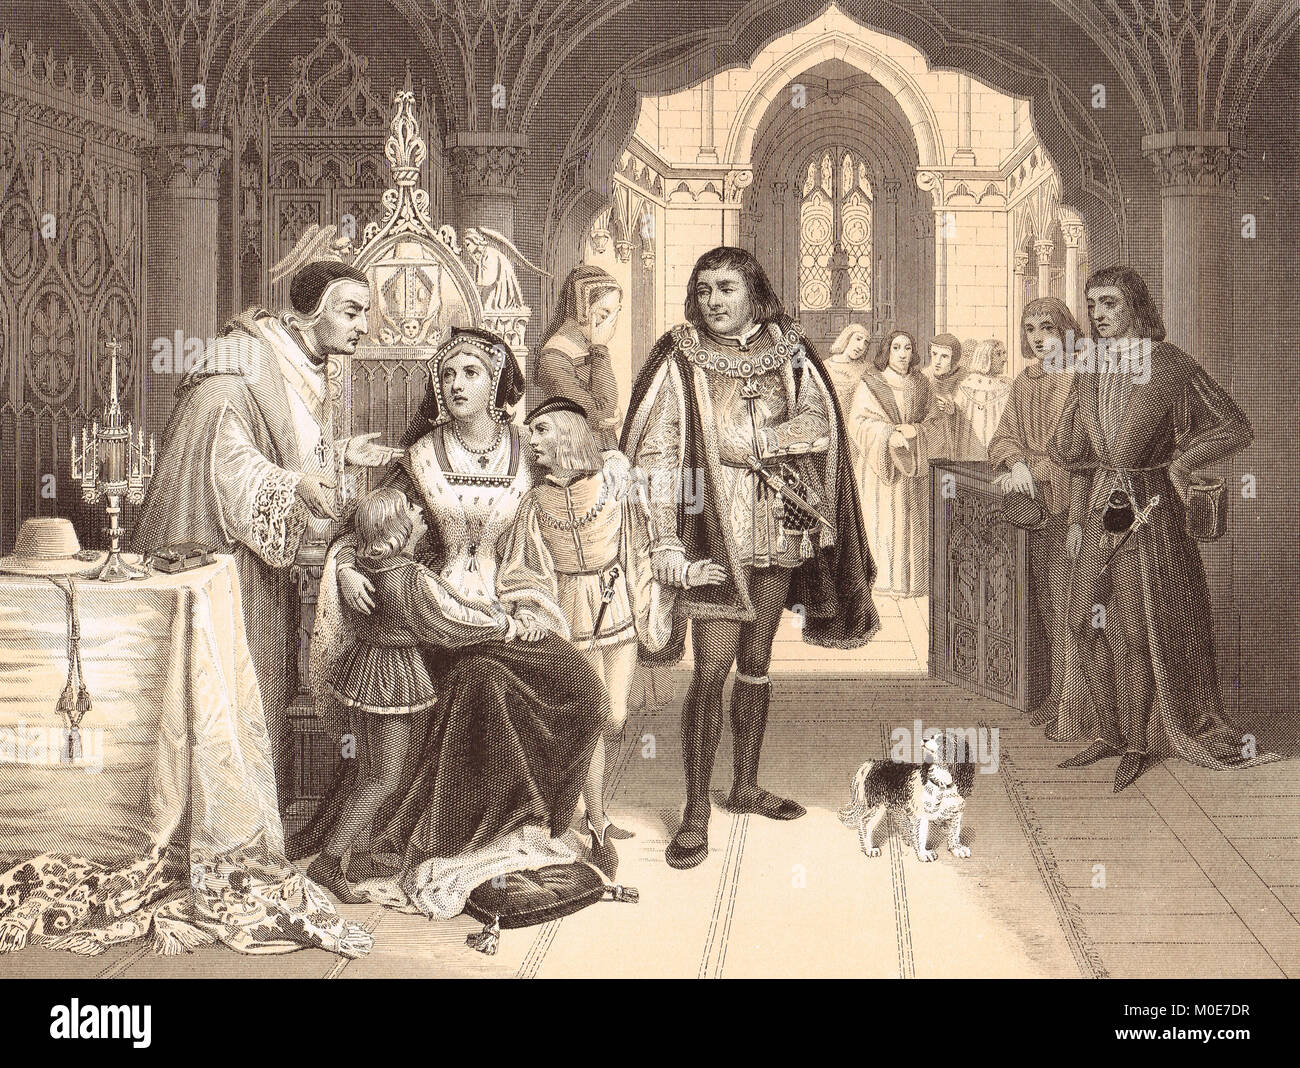 The sons of Edward IV parted from their mother by Richard Duke of Gloucester, June 16th 1483 - Stock Image